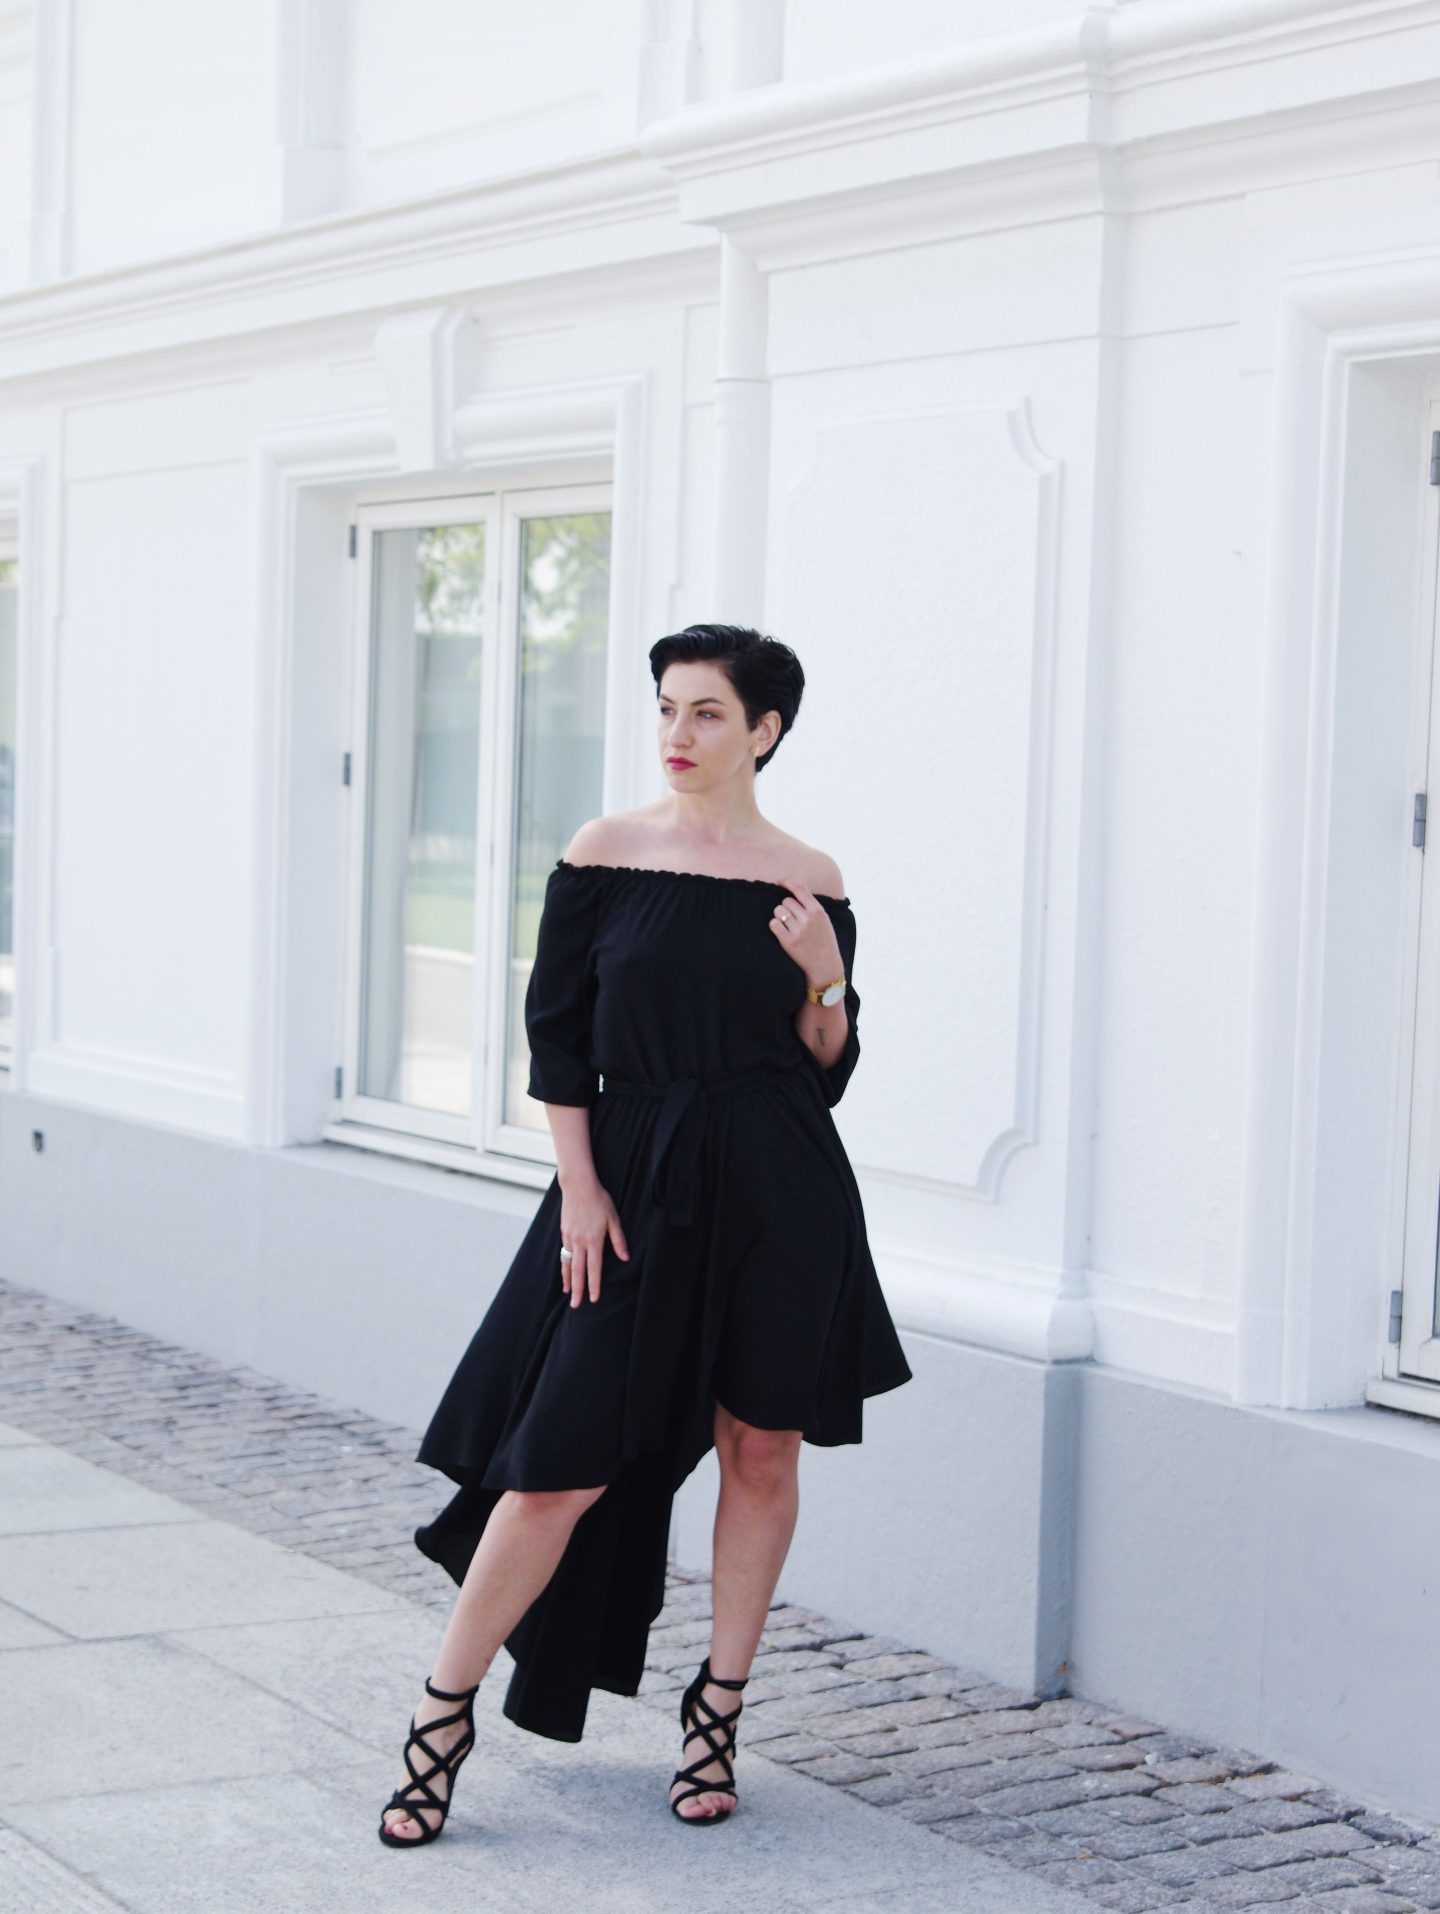 Summer dress, 80's dress, the black dress, high heels, short hair